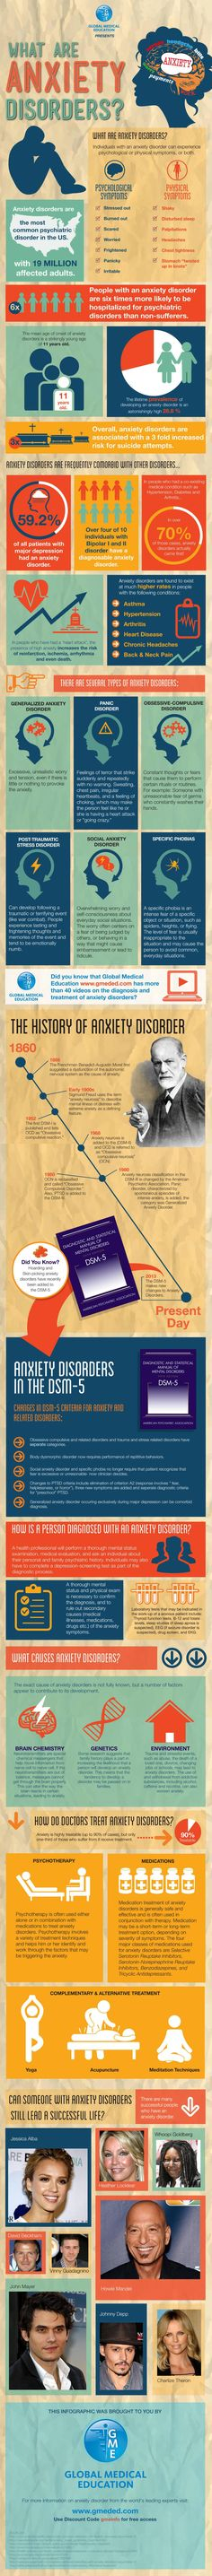 What are Anxiety disorders? Anxiety disorders are the commonest psychiatric illnesses globally. There is no test for anxiety disorders like panic disorder, PTSD,OCD or social anxiety disorder and the diagnosis is based on a good history and examination. Anxiety Help, Social Anxiety, Stress And Anxiety, Anxiety Facts, Anxiety Girl, Overcoming Anxiety, What Is Anxiety Disorder, Panic Disorder, Health And Fitness